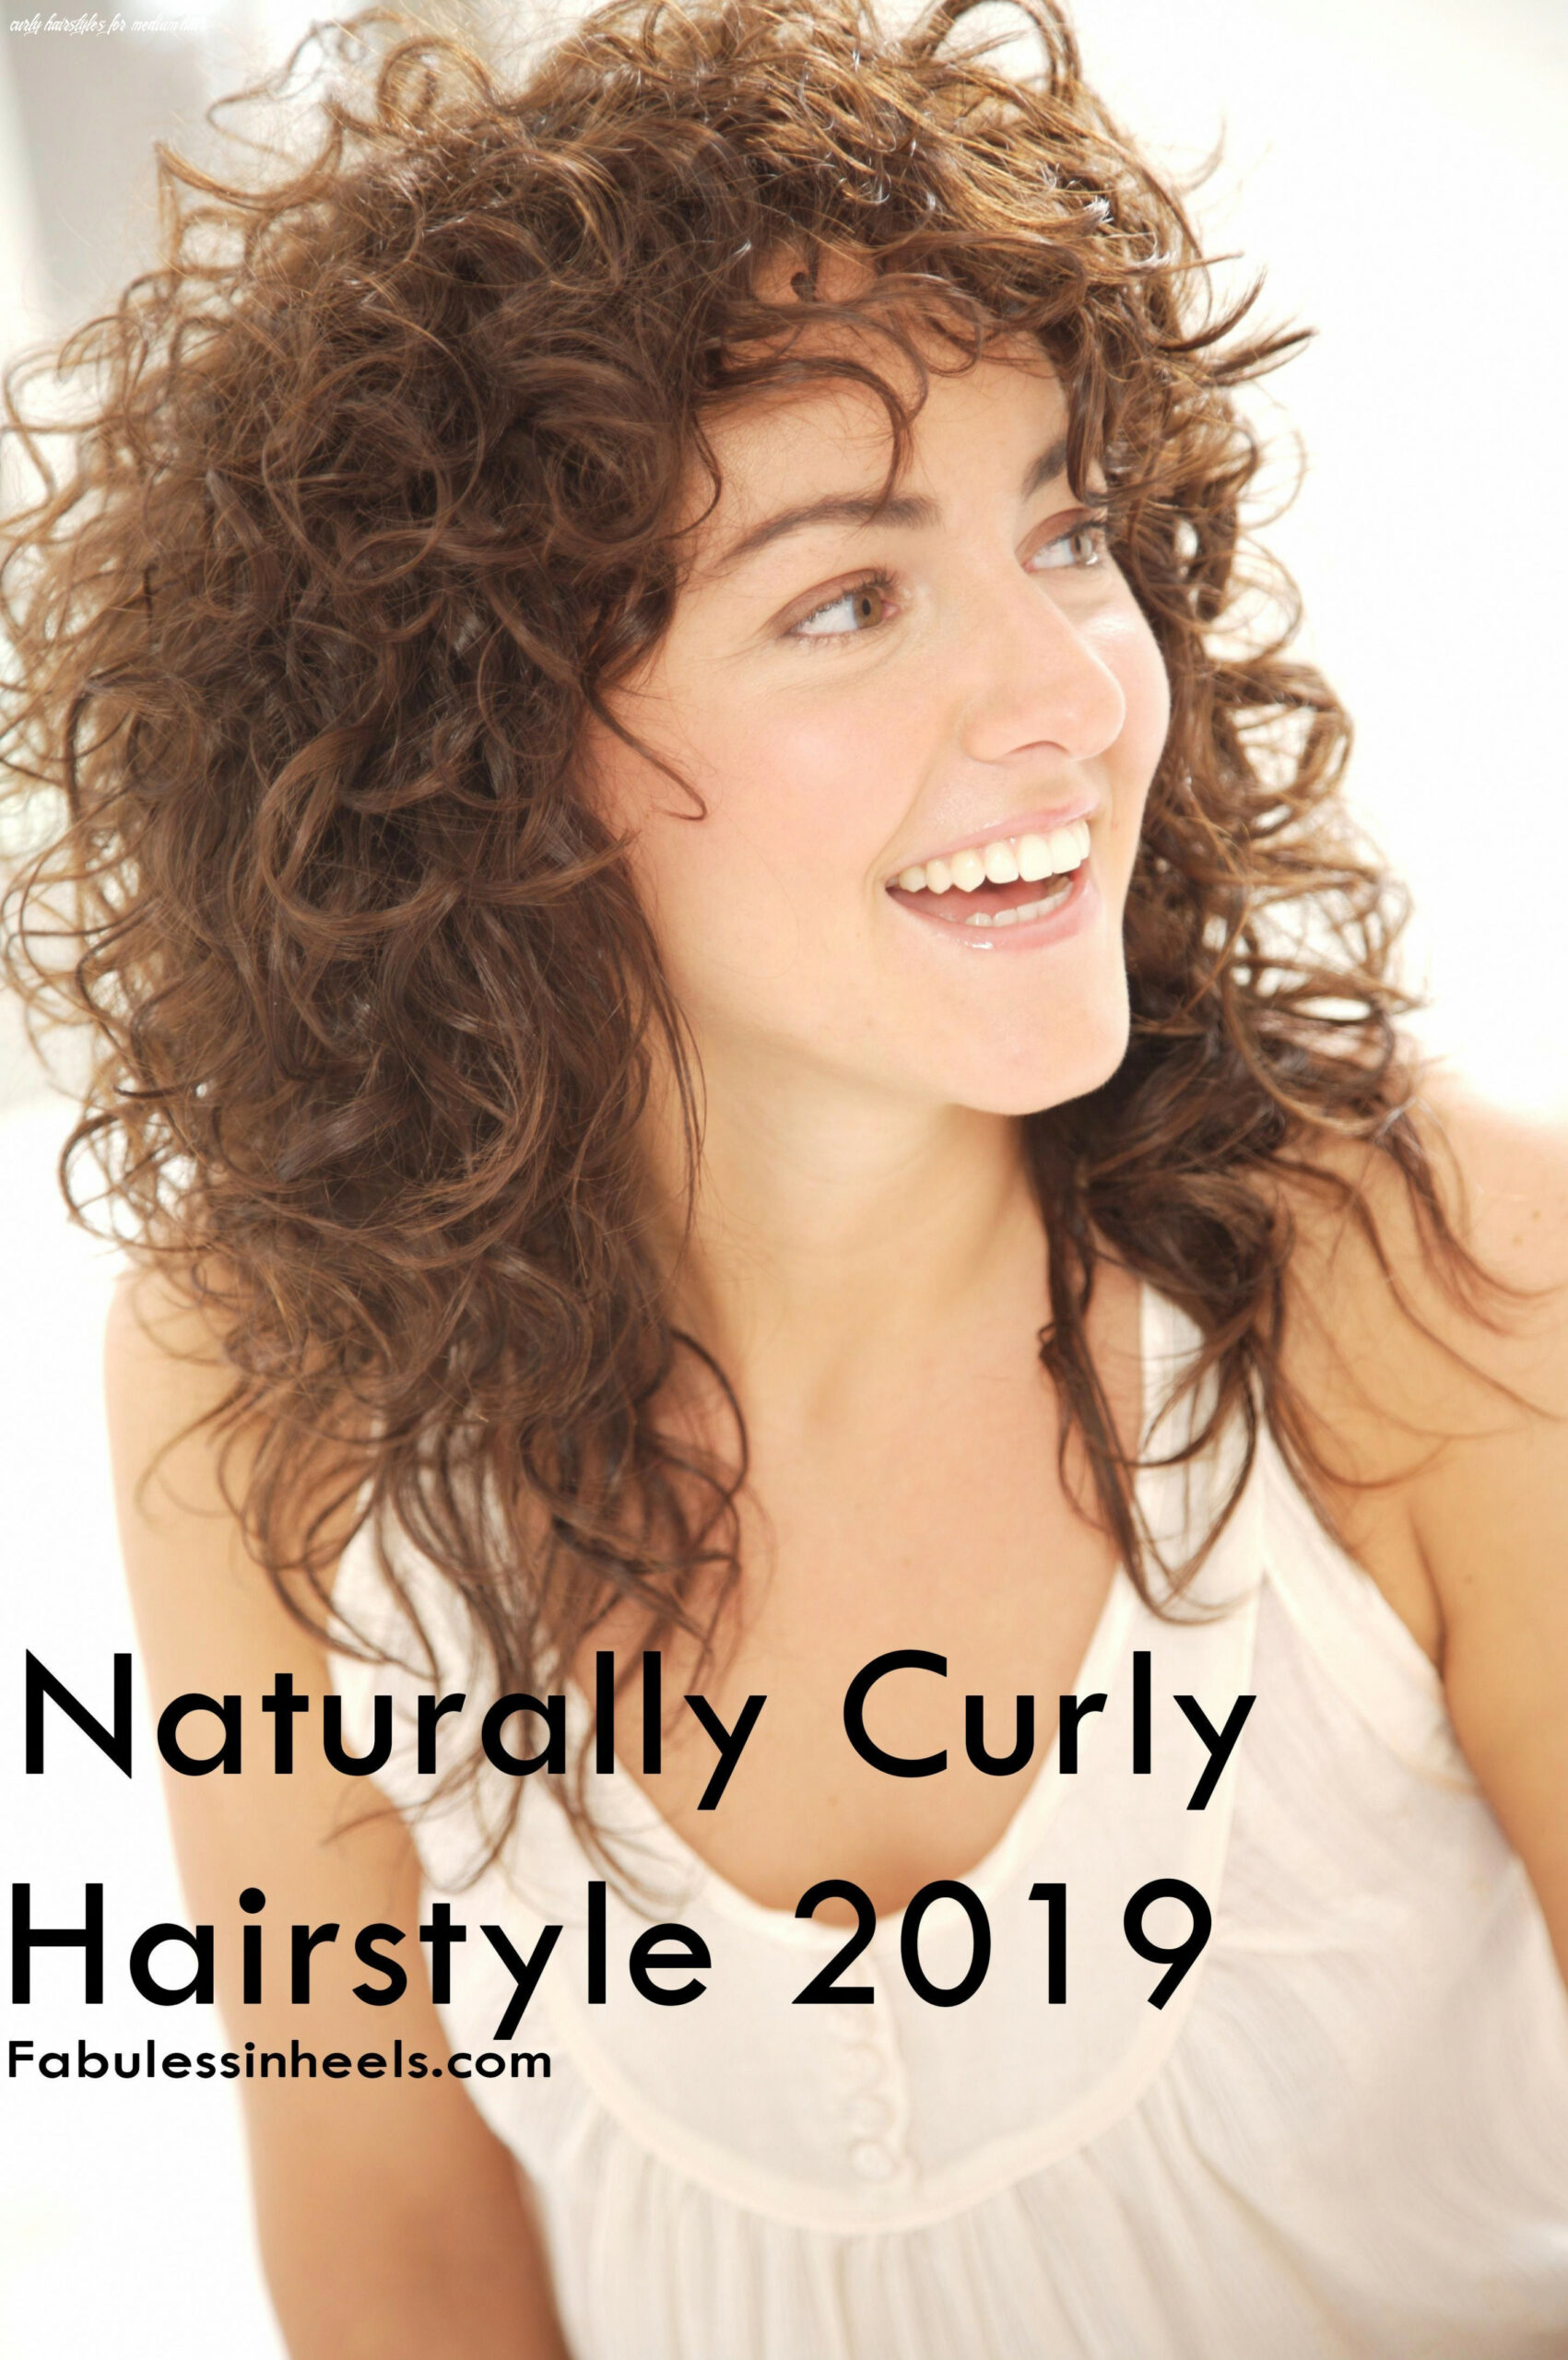 8 hairstyles for naturally curly hair to rock this summer